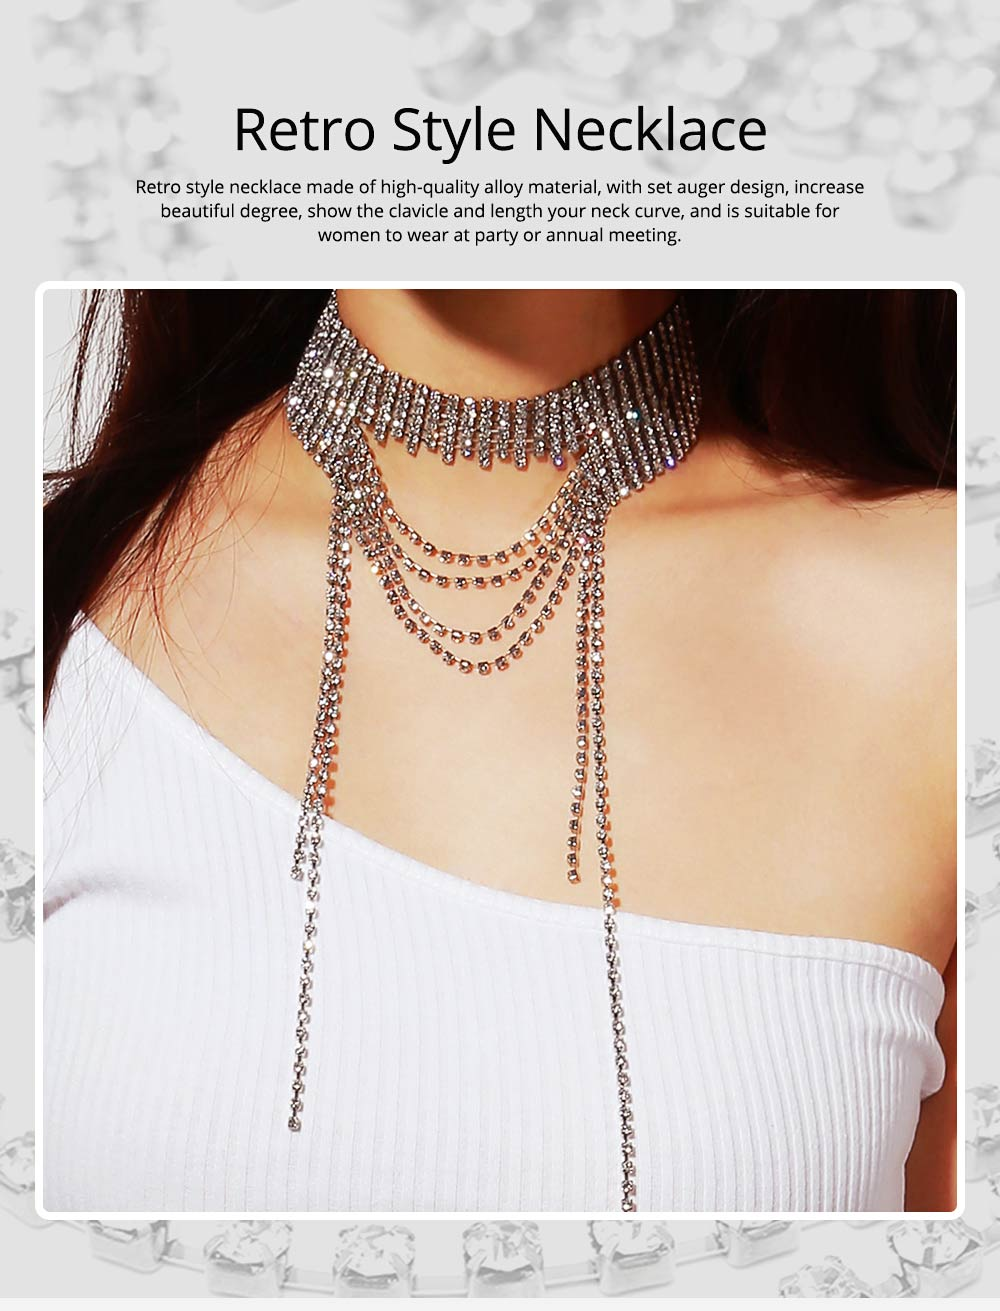 Retro Style Necklace for Women Set Auger Show the Clavicle Multilayer Alloy Material Collarbone Chain 0